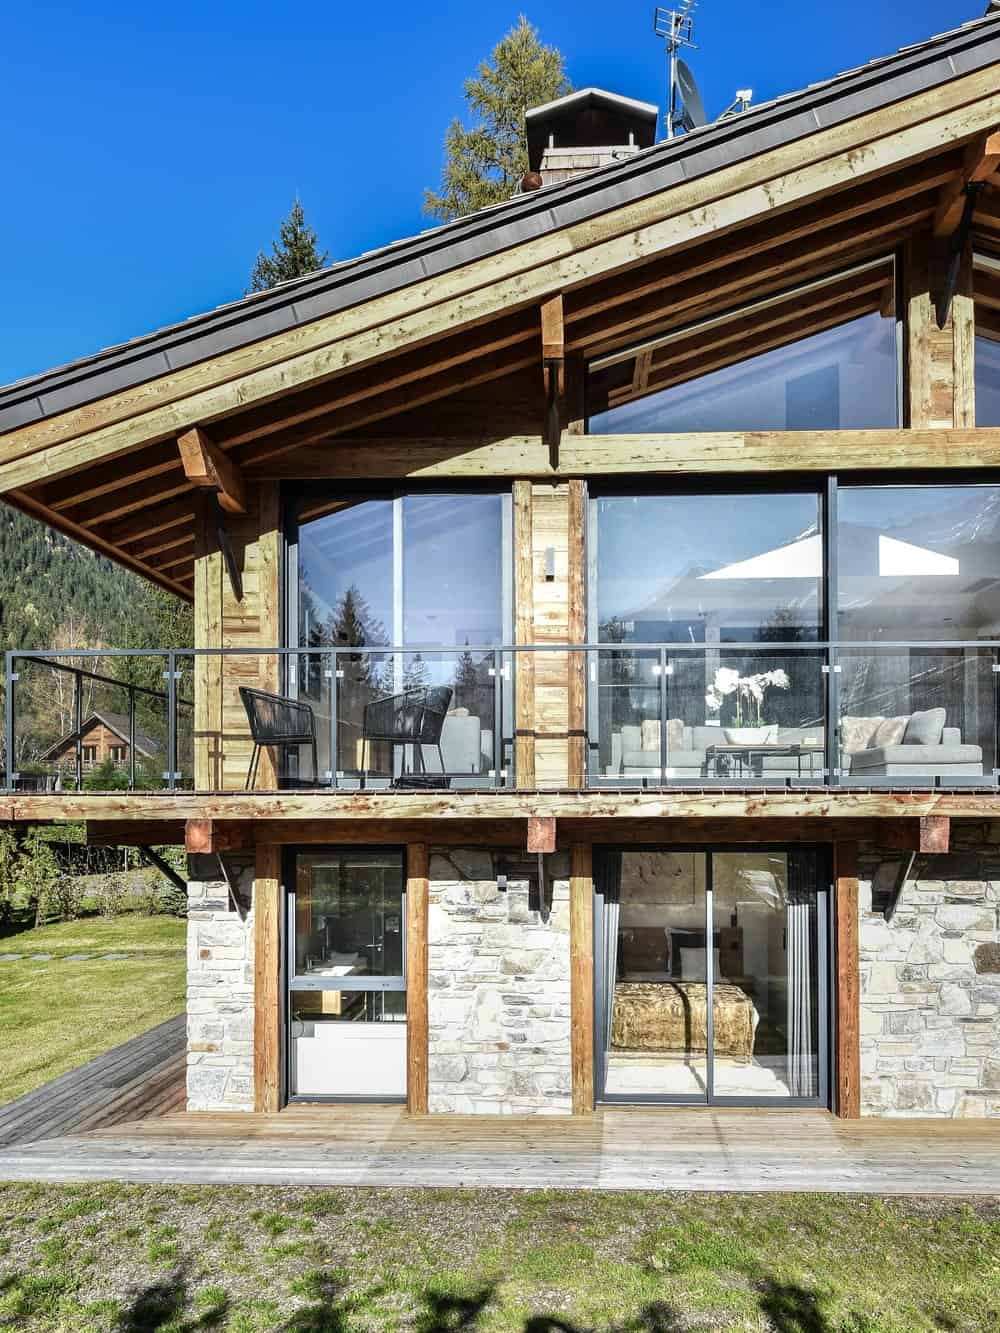 This side of the house showcases the second level glass walls and the ground level stone walls that also has glass walls and doors.